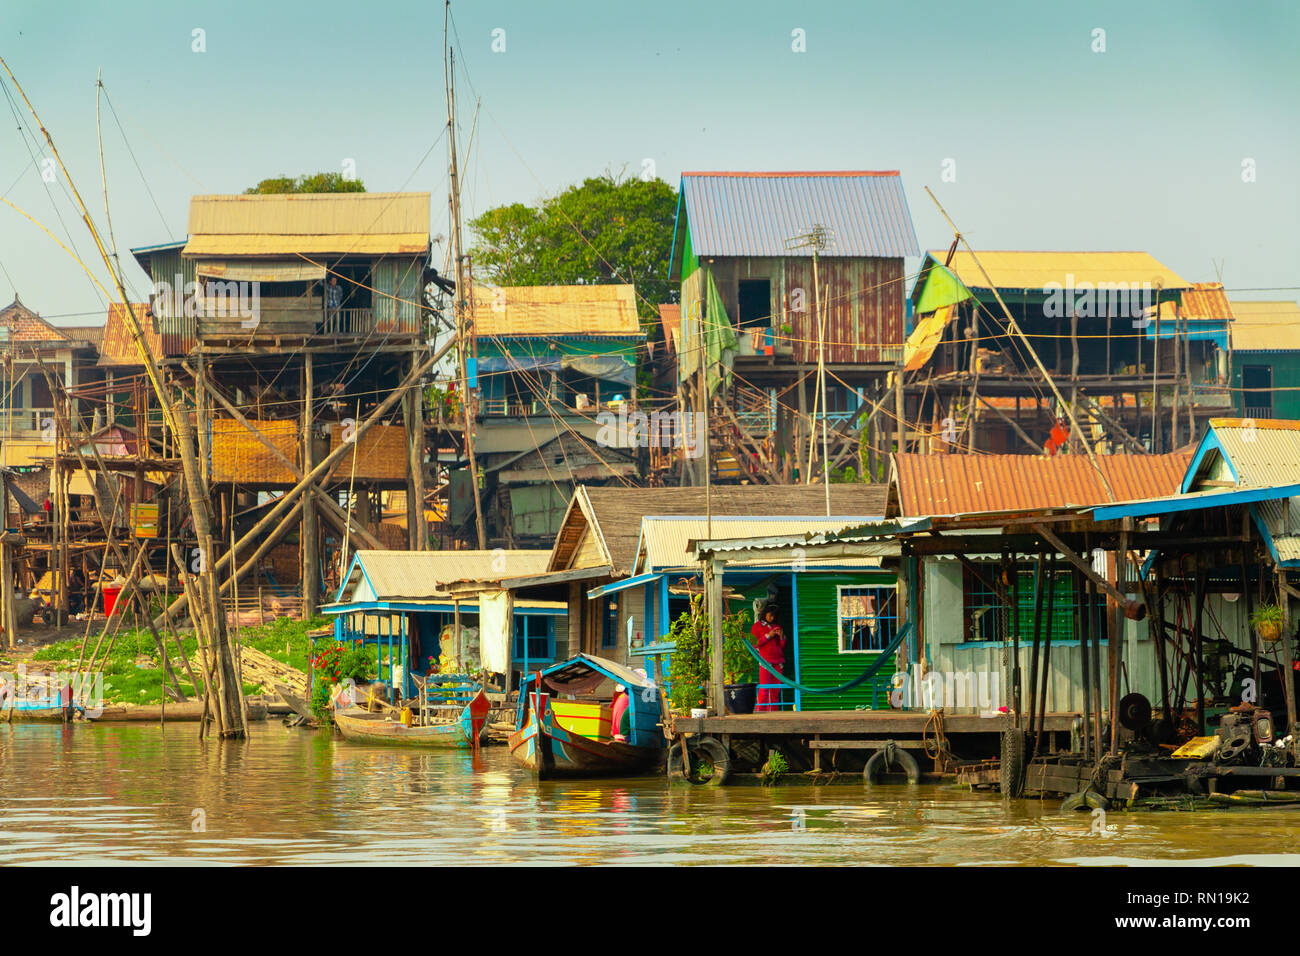 Wooden houses on stilts are home to many families in  floating village on Tonle Sap River, Kampong Chhnang, Mekong Delta, Cambodia, Asia Stock Photo